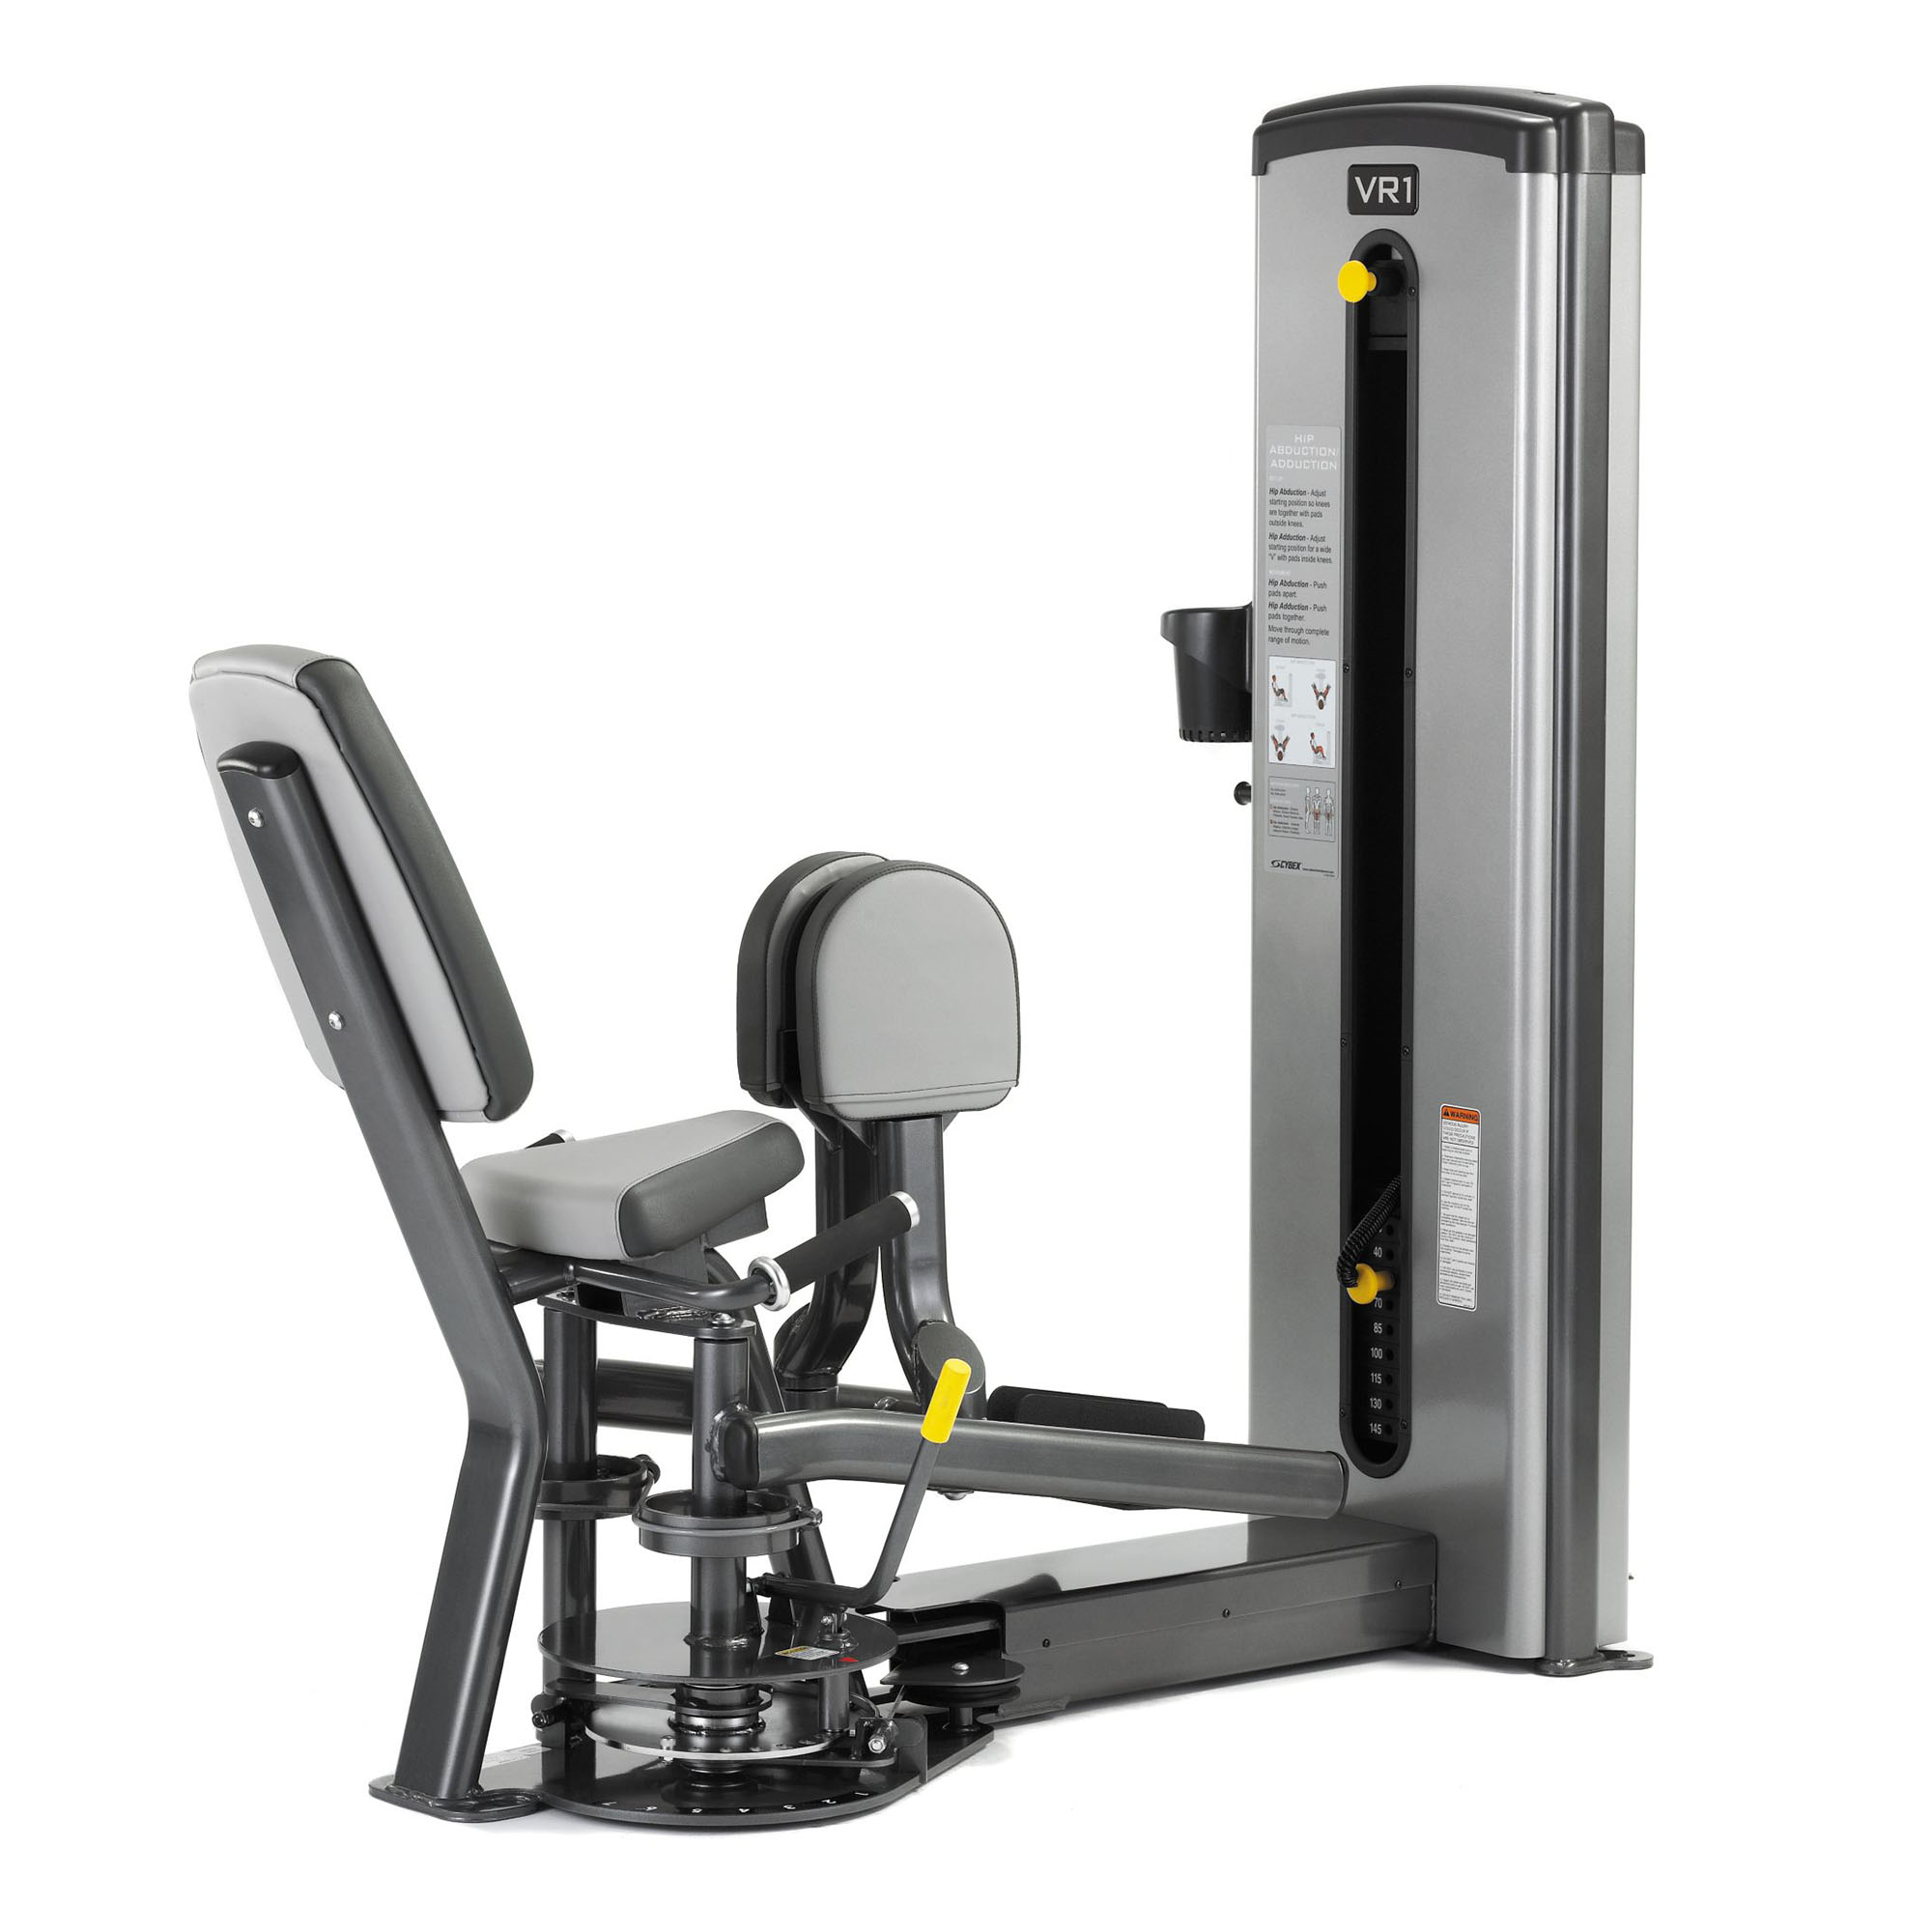 Cybex VR1 Duals Hip Ab and Ad